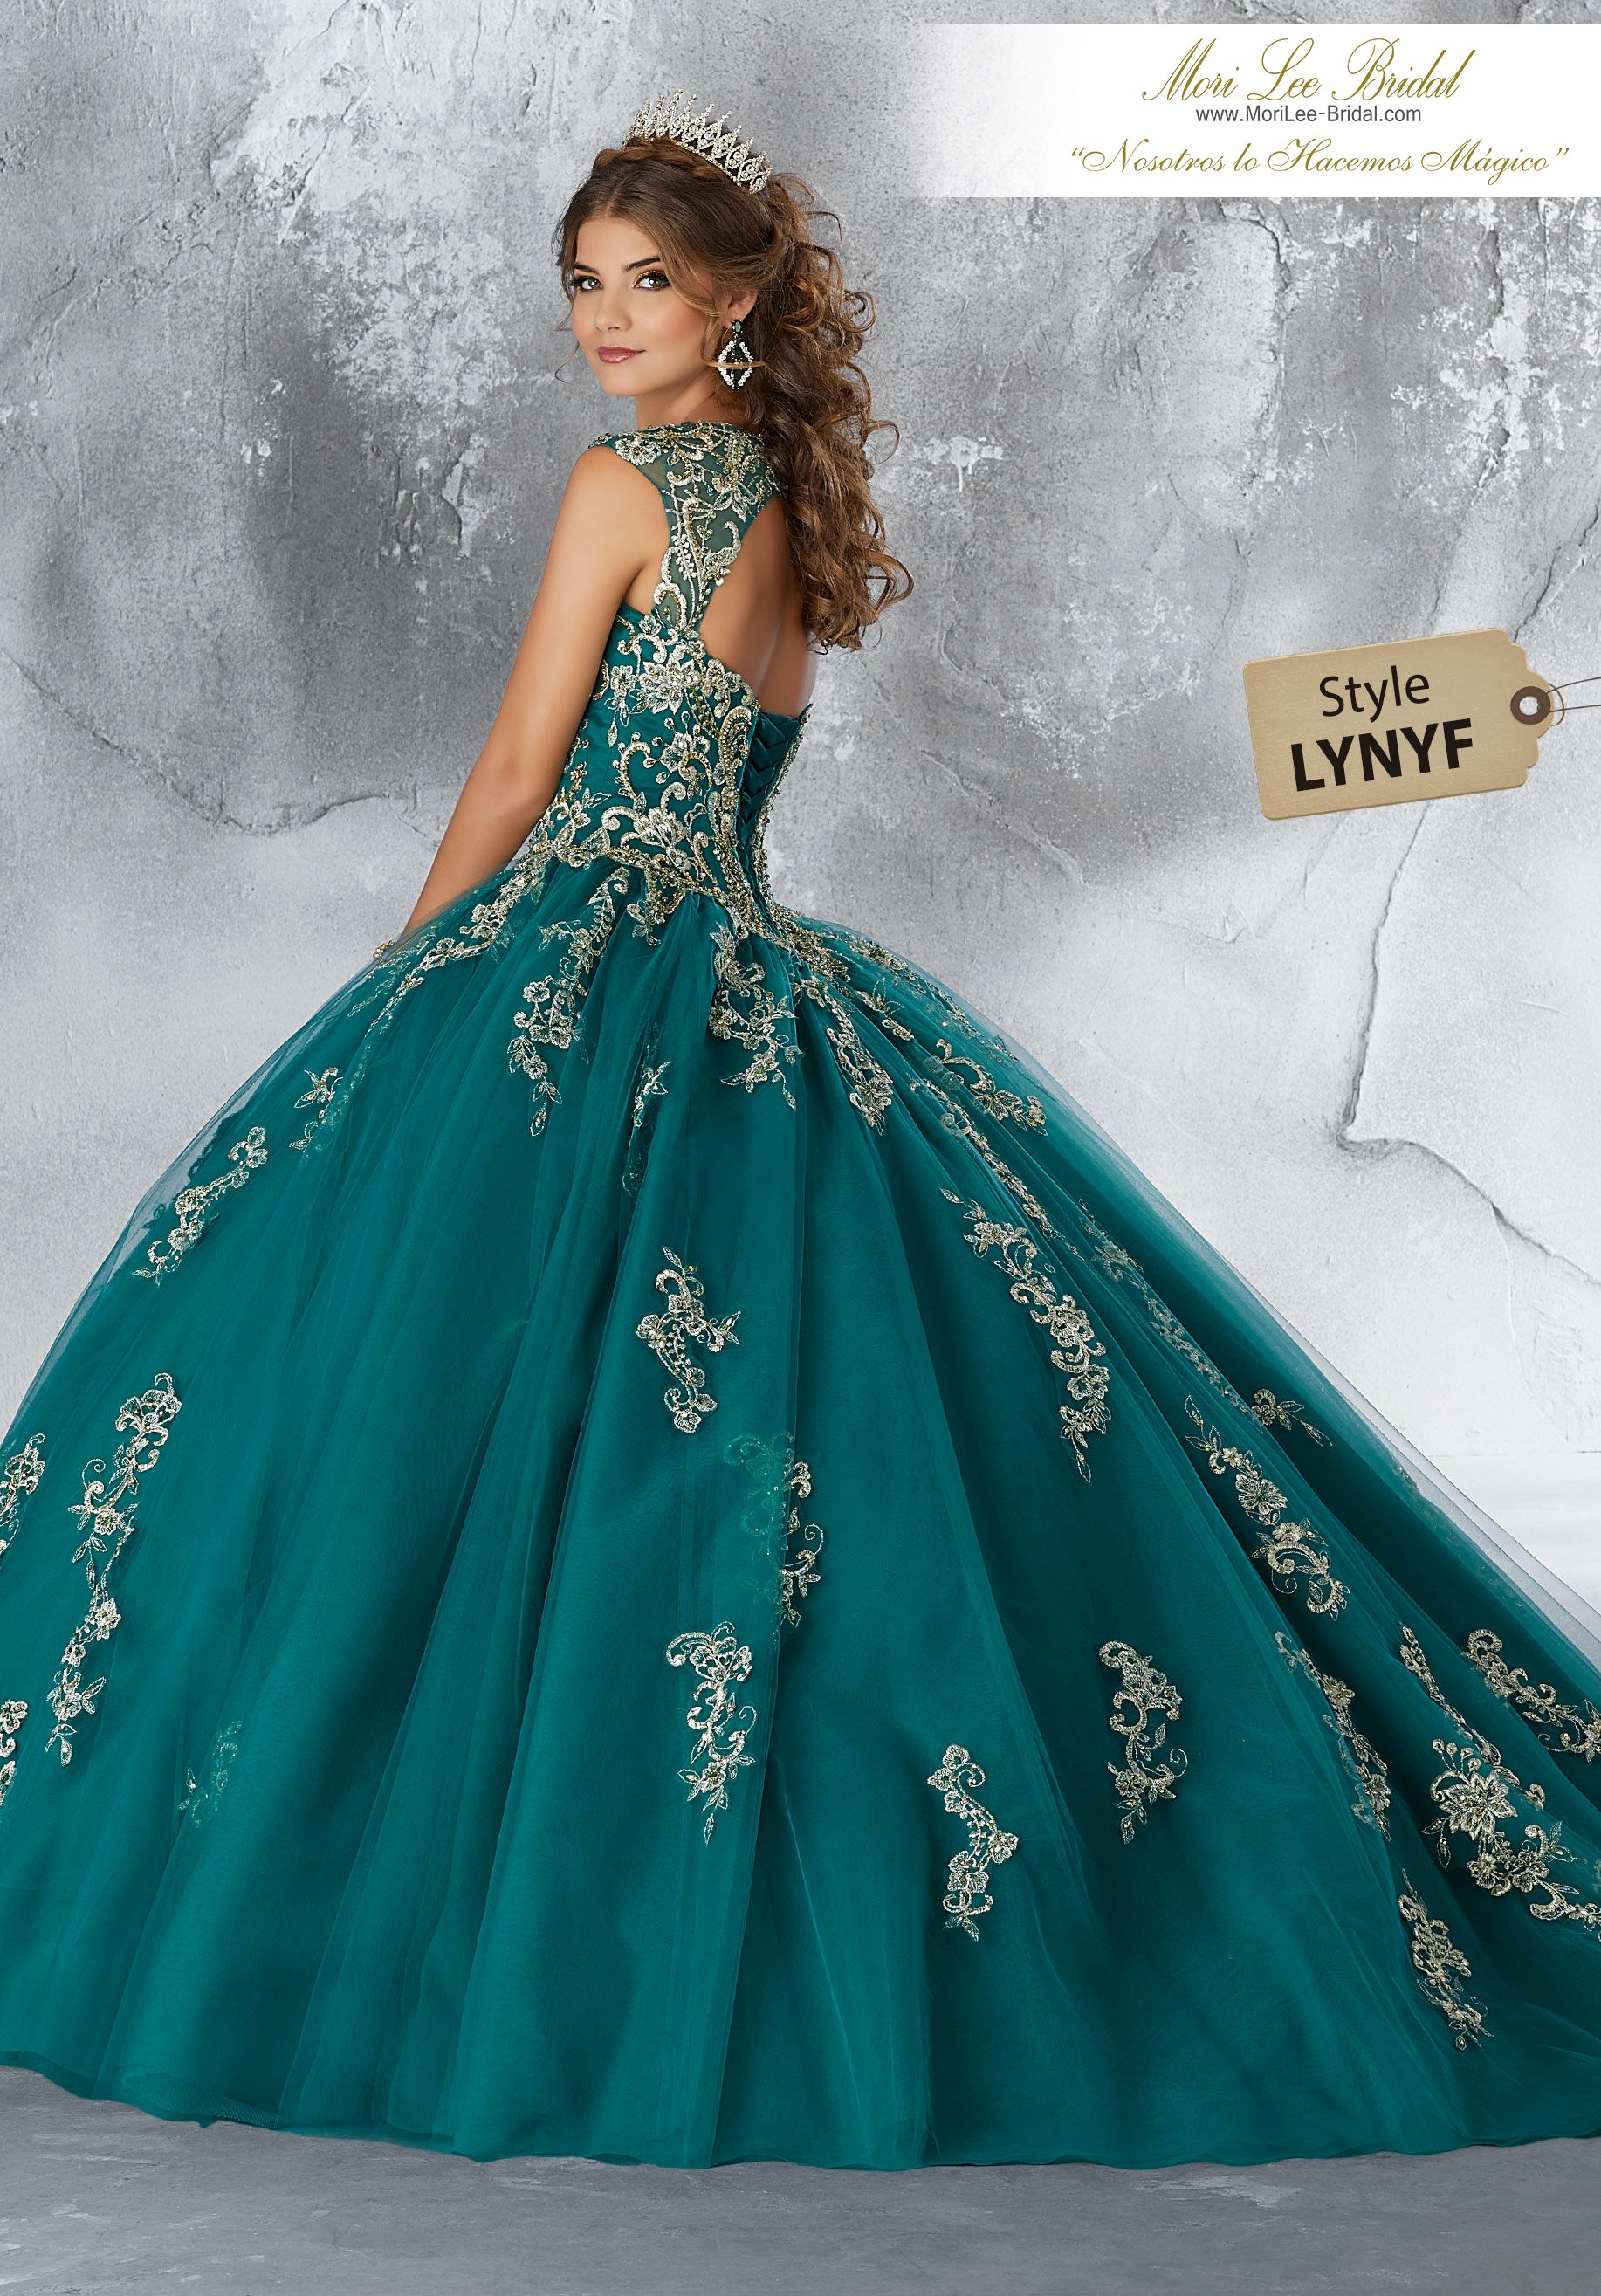 90db46b8b4a Estilo LYNYF Contrasting Beaded Embroidery on a Tulle Ballgown Tulle  Quinceañera Dress Featuring Gorgeous Contrasting Embroidery